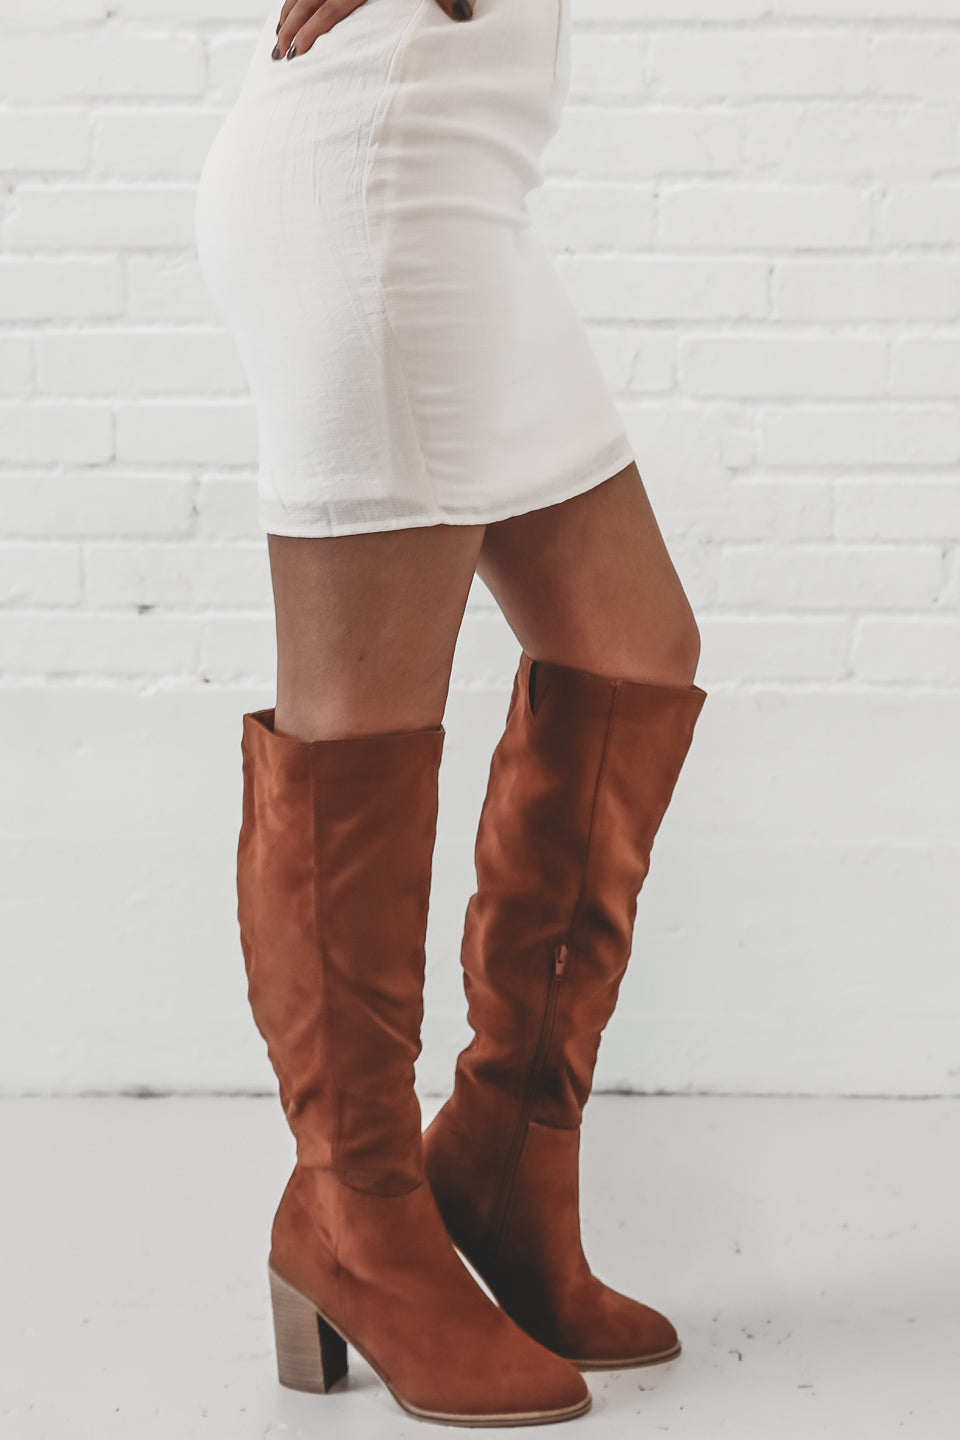 Can You Not Tan Knee High Boots